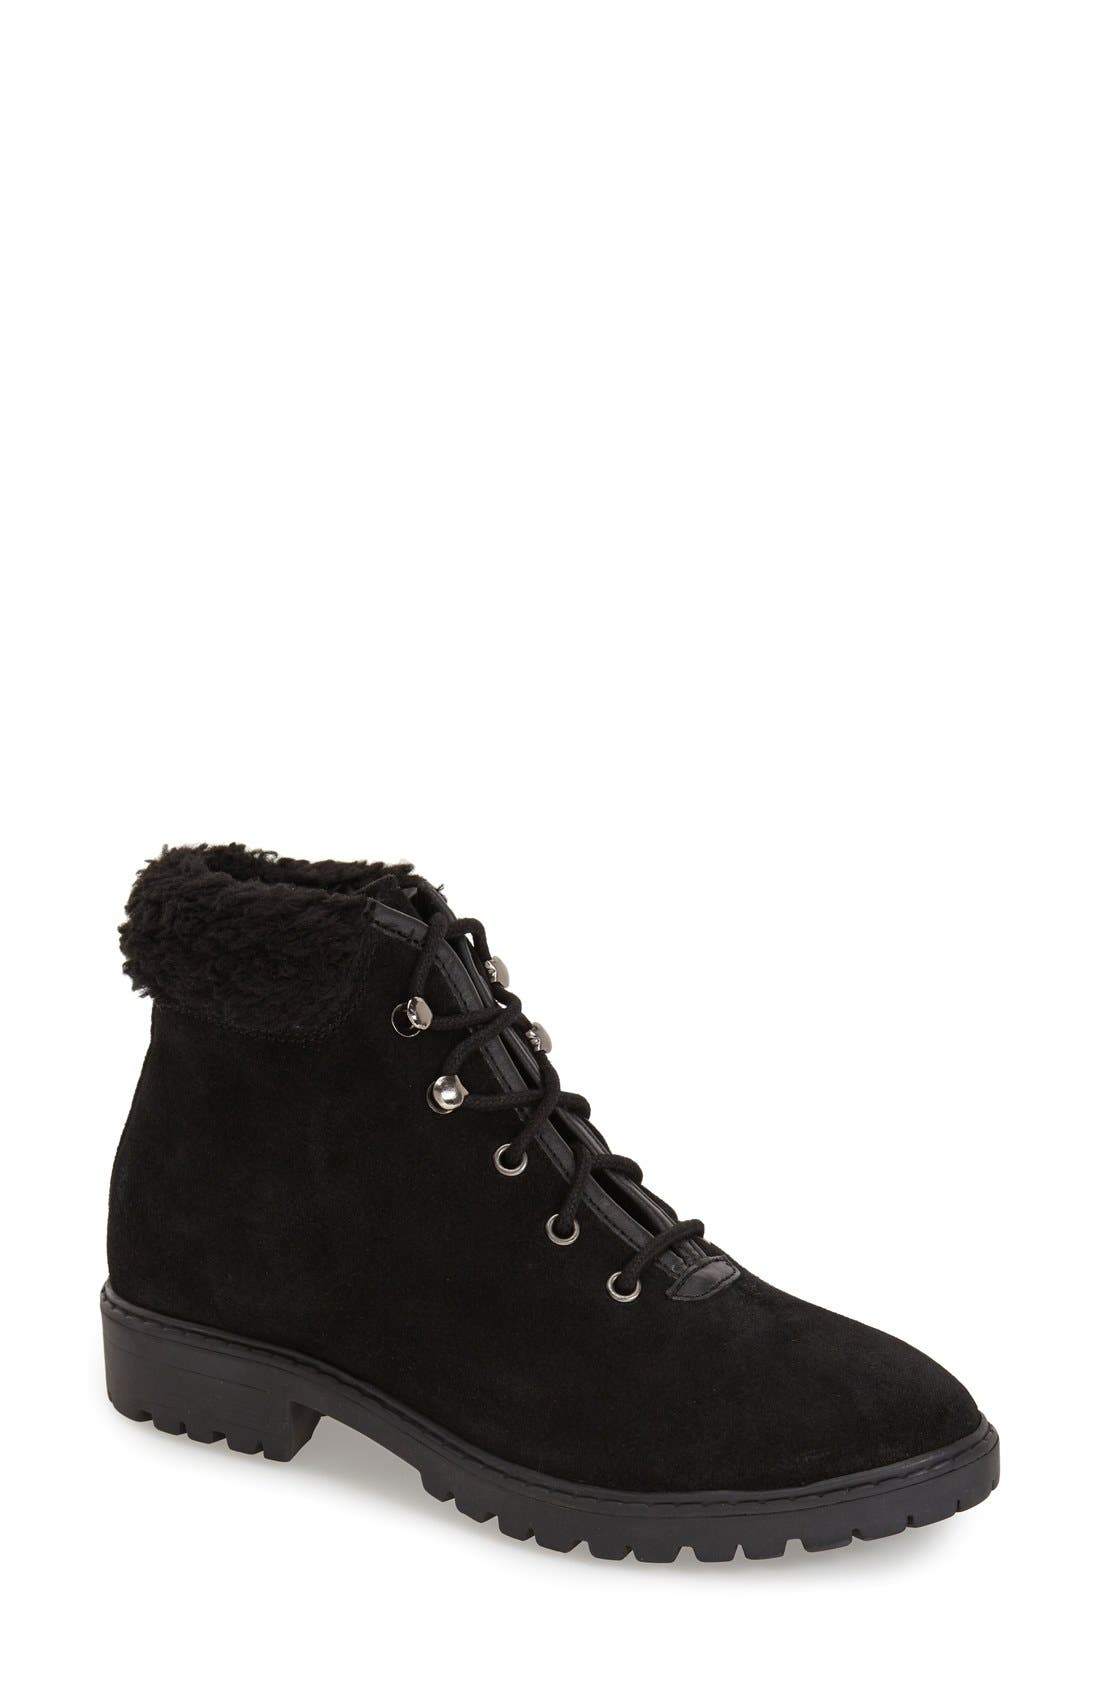 Alternate Image 1 Selected - Topshop 'Birdy' Lace-Up Boot (Women)